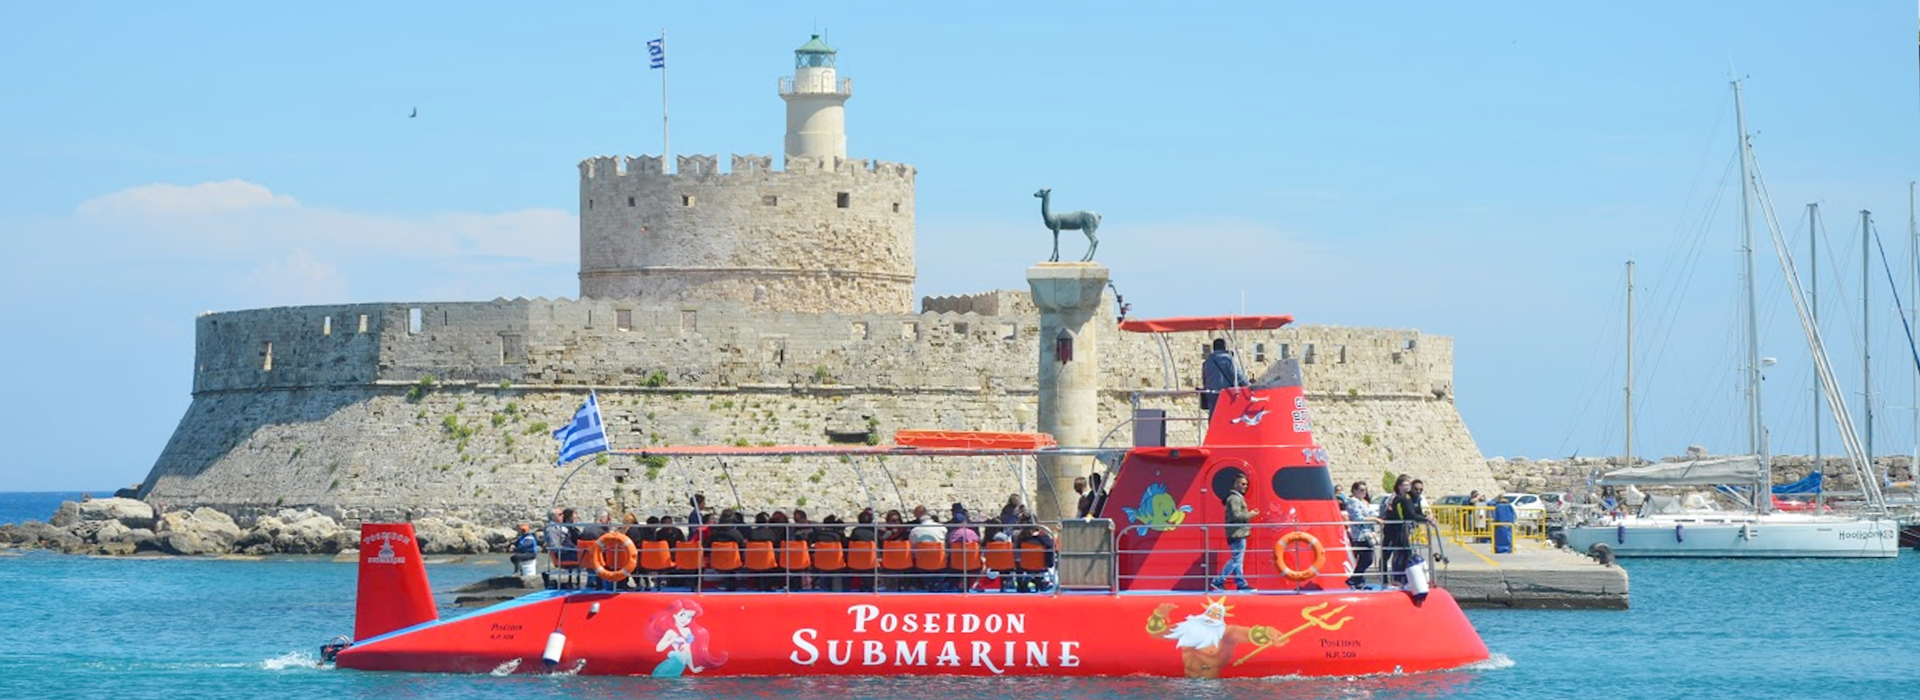 Poseidon Submarine Rhodes | Captains Tours